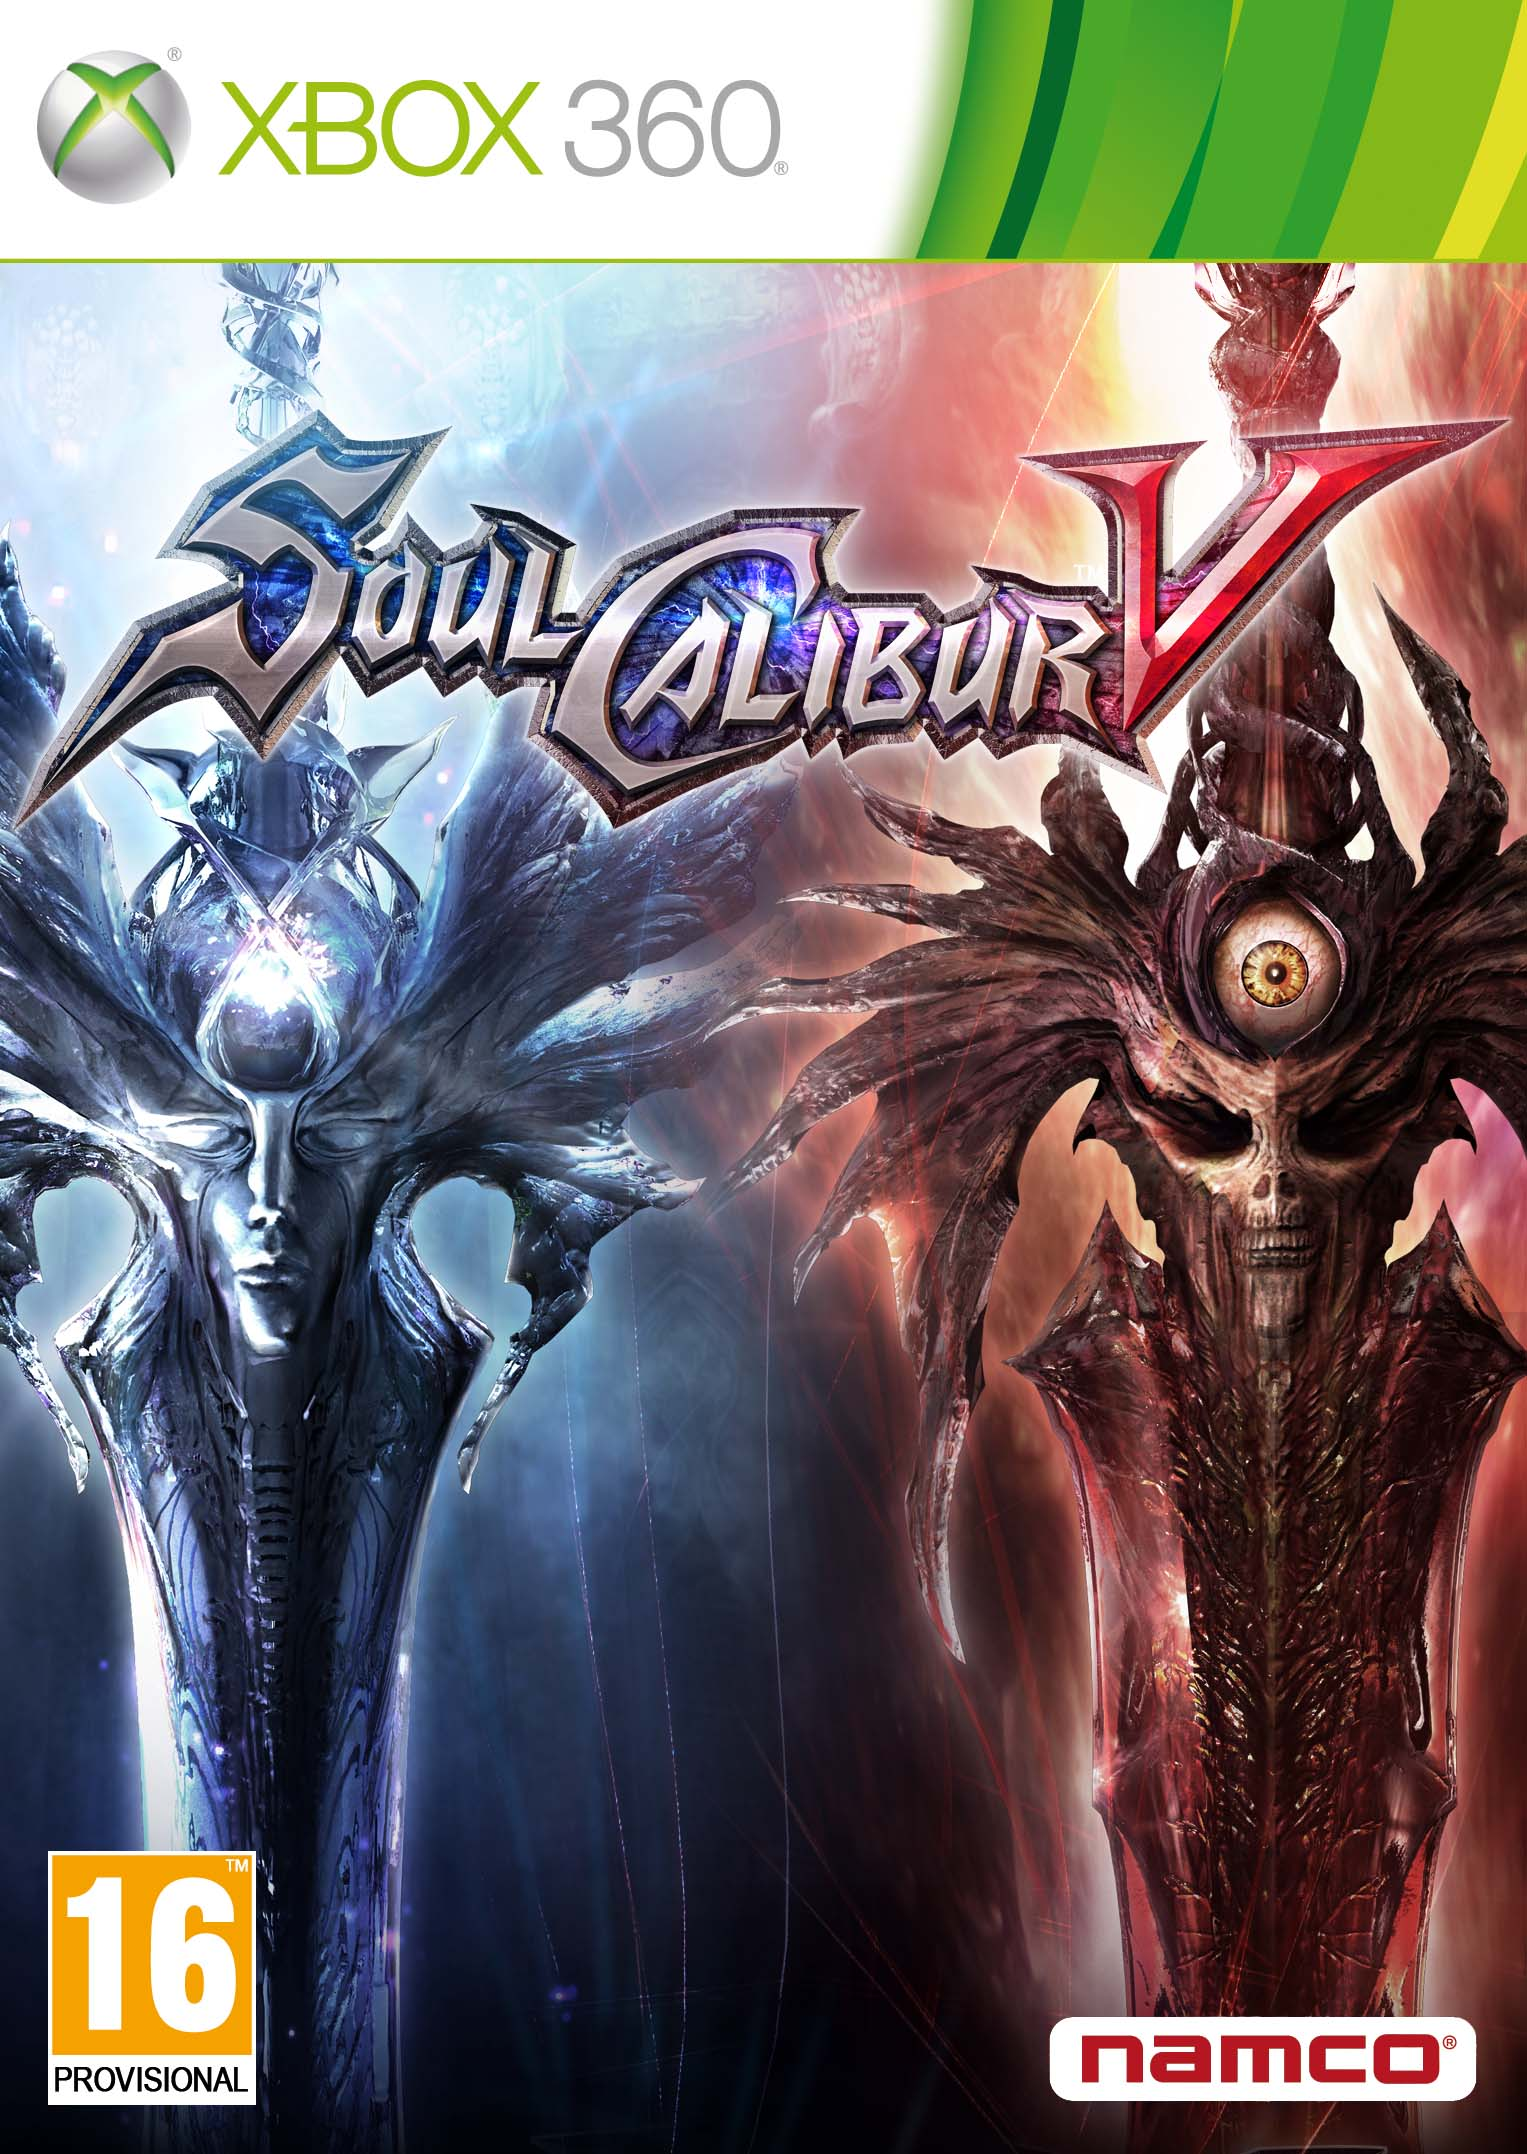 Box art - Soulcalibur V